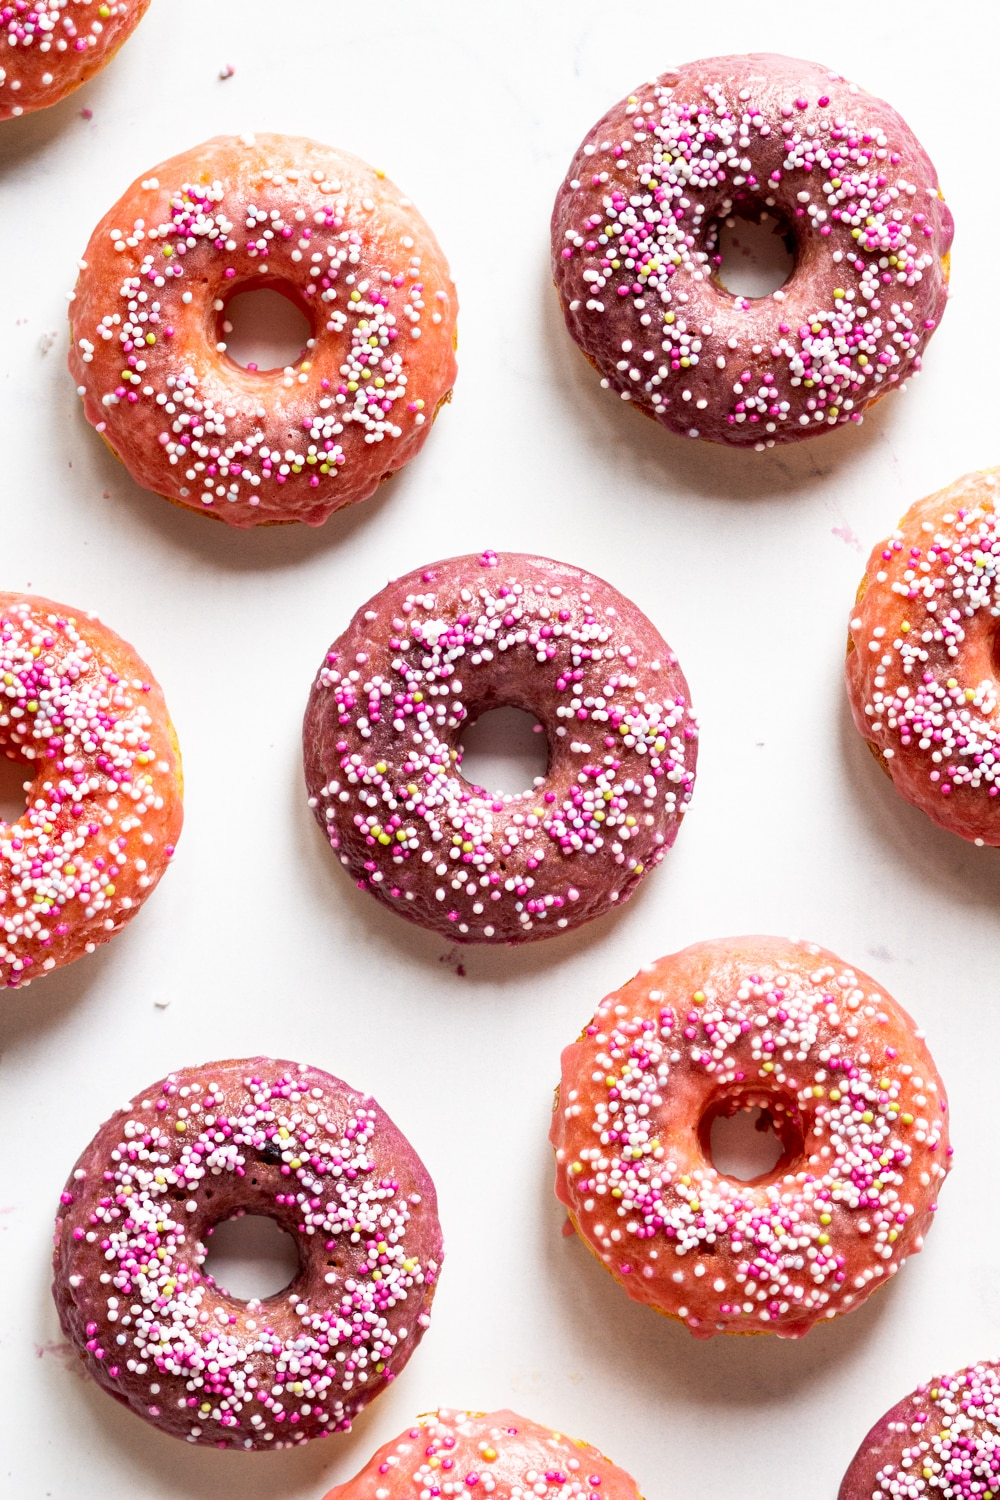 An overhead view of five whole vegan donuts with four halves of vegan donuts on the sides. The donuts all have a pink glaze with white, pink, and yellow ball sprinkles on top.